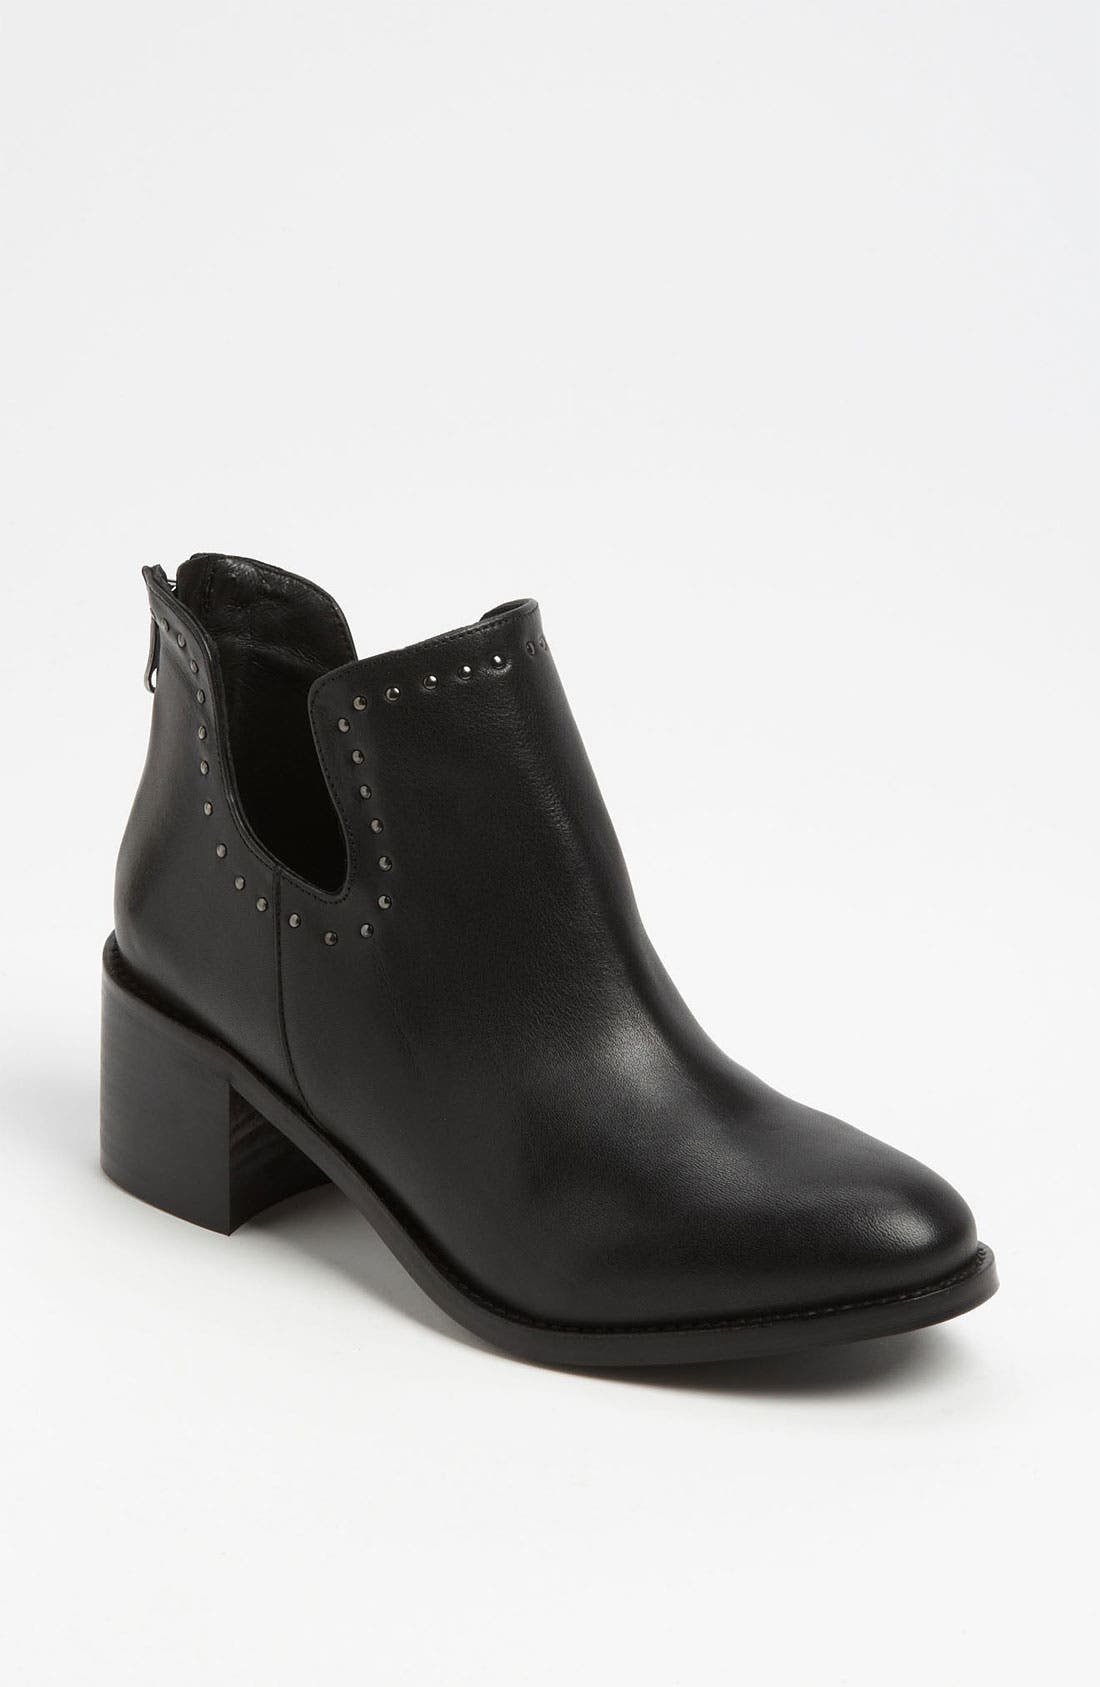 Alternate Image 1 Selected - Topshop 'Accent' Boot